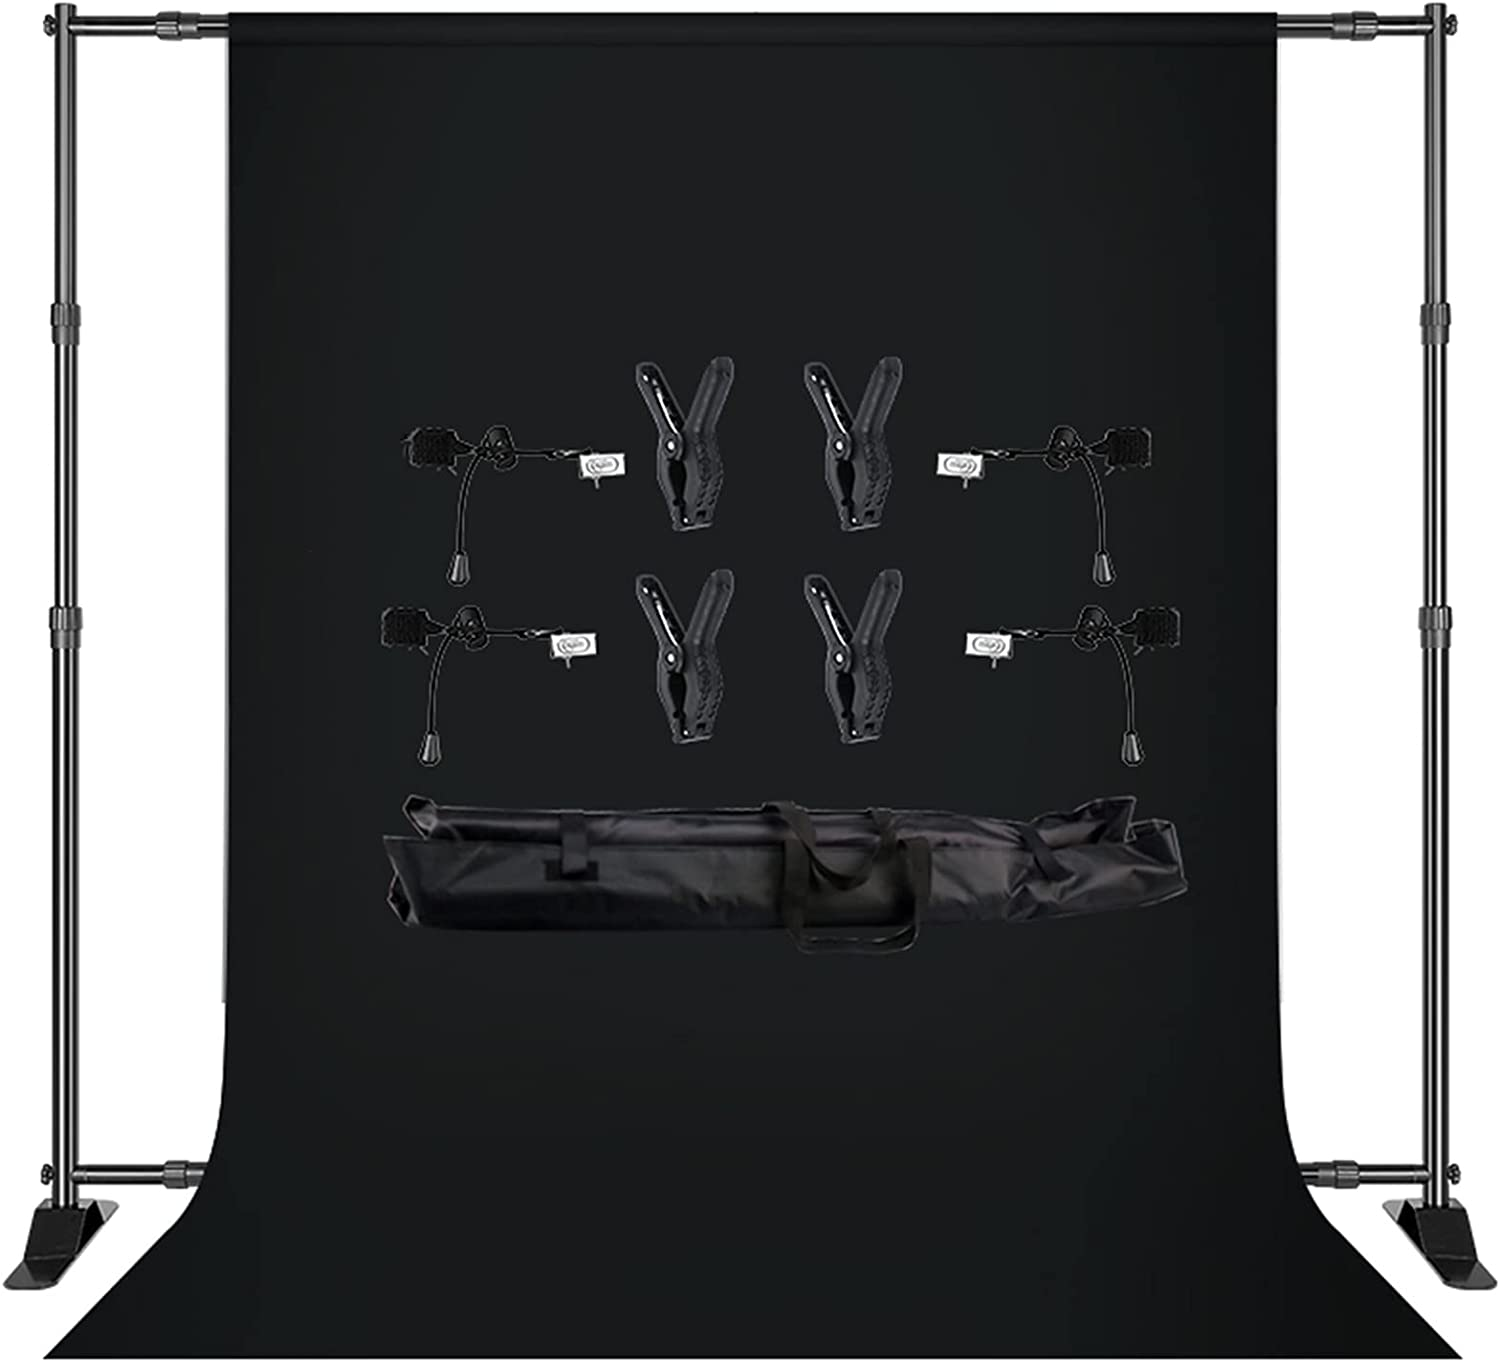 YYFANGYF Sales results No. 1 Photo Video Studio Background Stand 2.7x3m Kit Double- Al sold out.